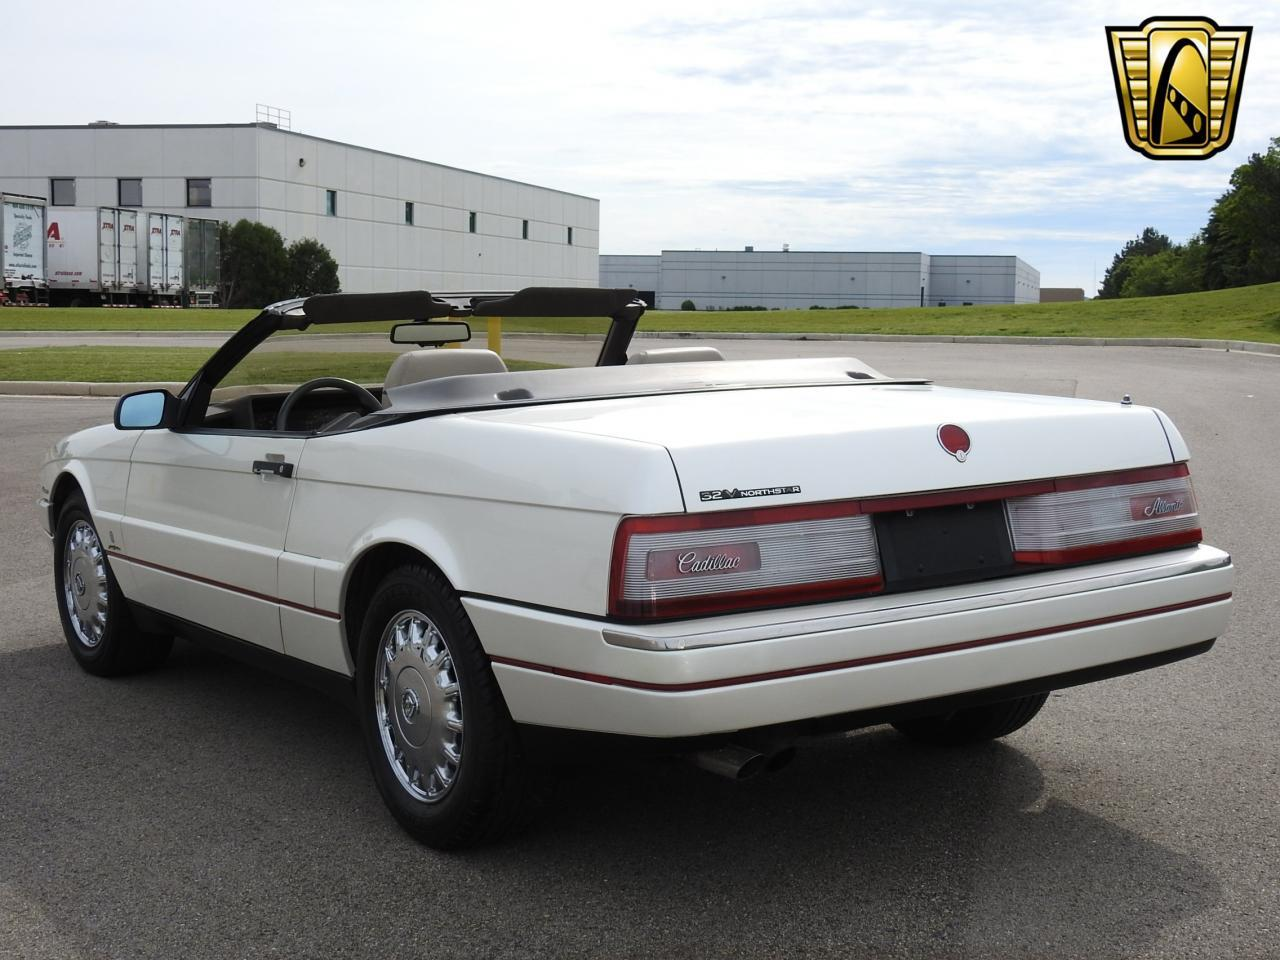 Large Picture of '93 Cadillac Allante located in Wisconsin - $10,995.00 Offered by Gateway Classic Cars - Milwaukee - LF3Y